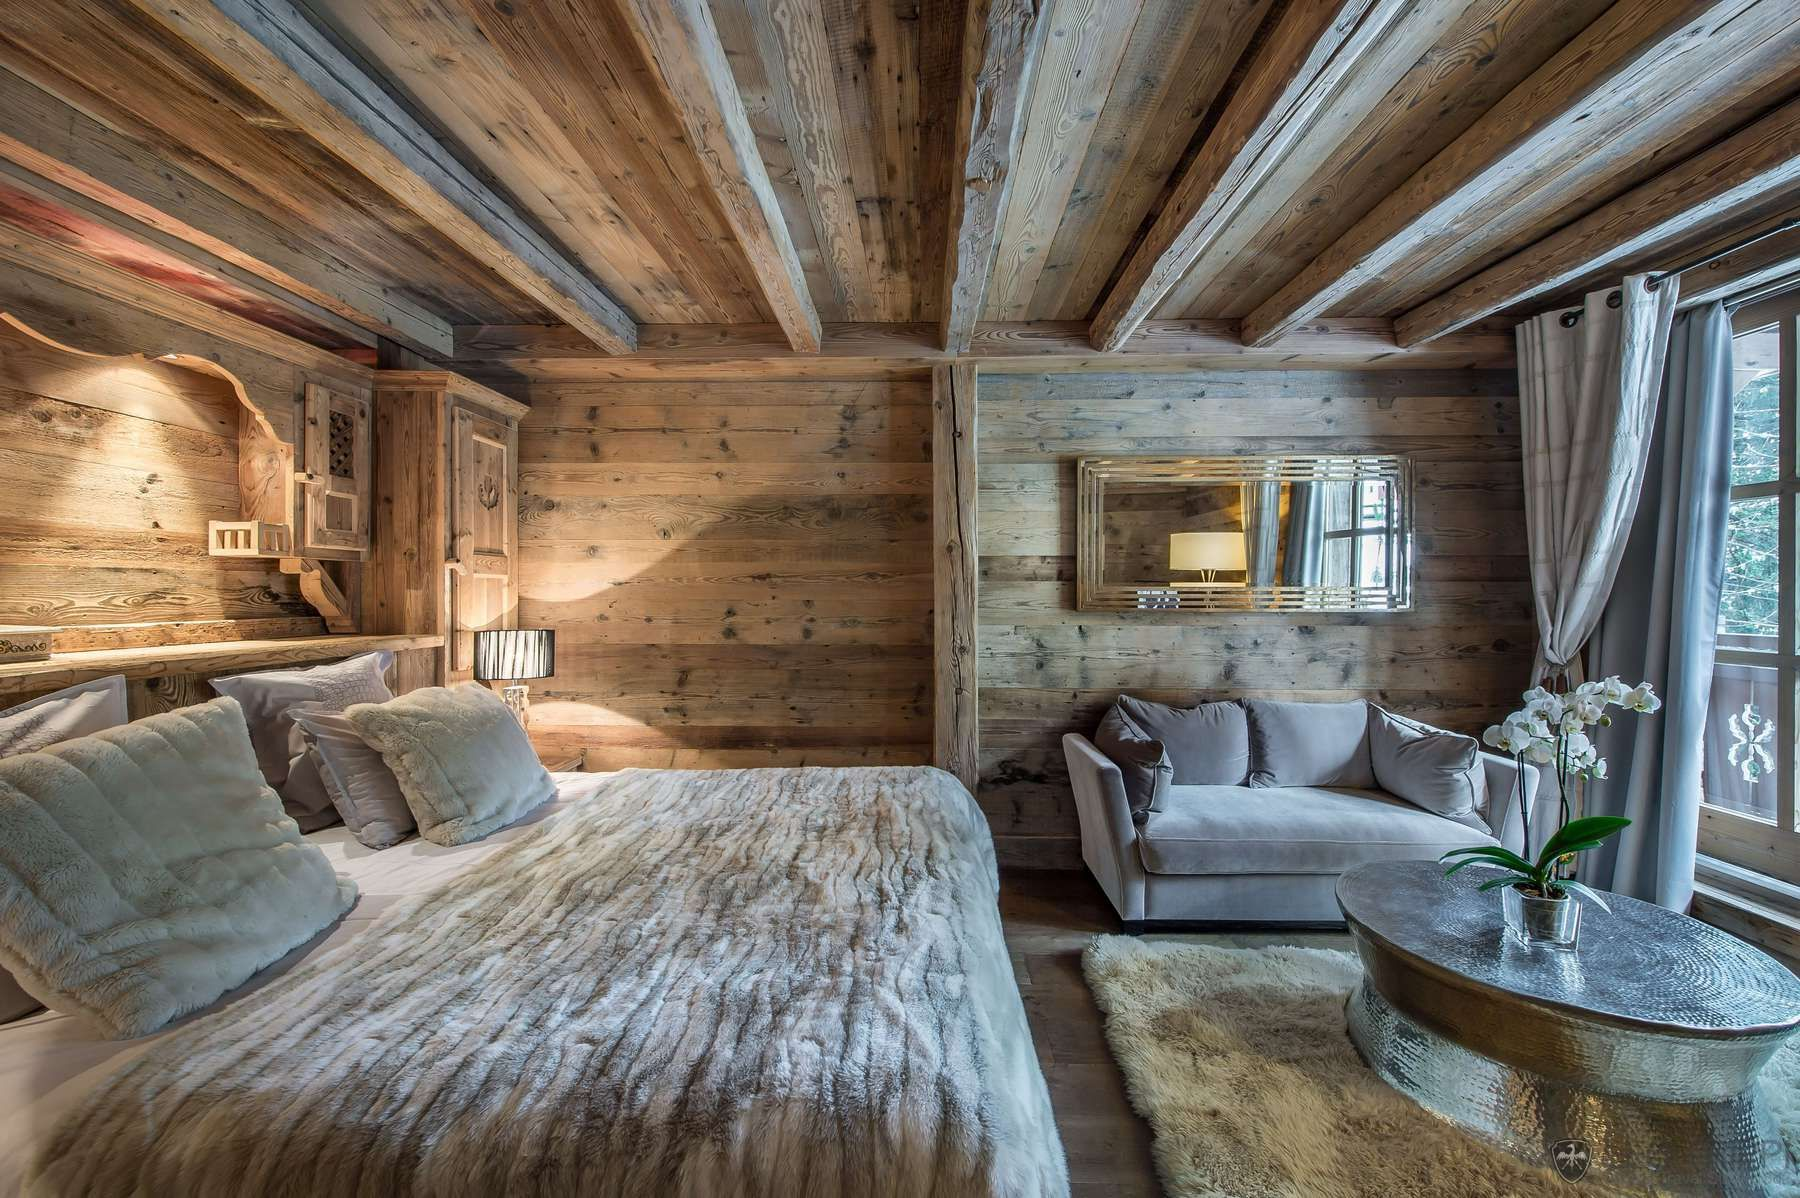 location de chalet de luxe courchevel 1850 chalet maria 1850 leo trippi chalet chambre. Black Bedroom Furniture Sets. Home Design Ideas